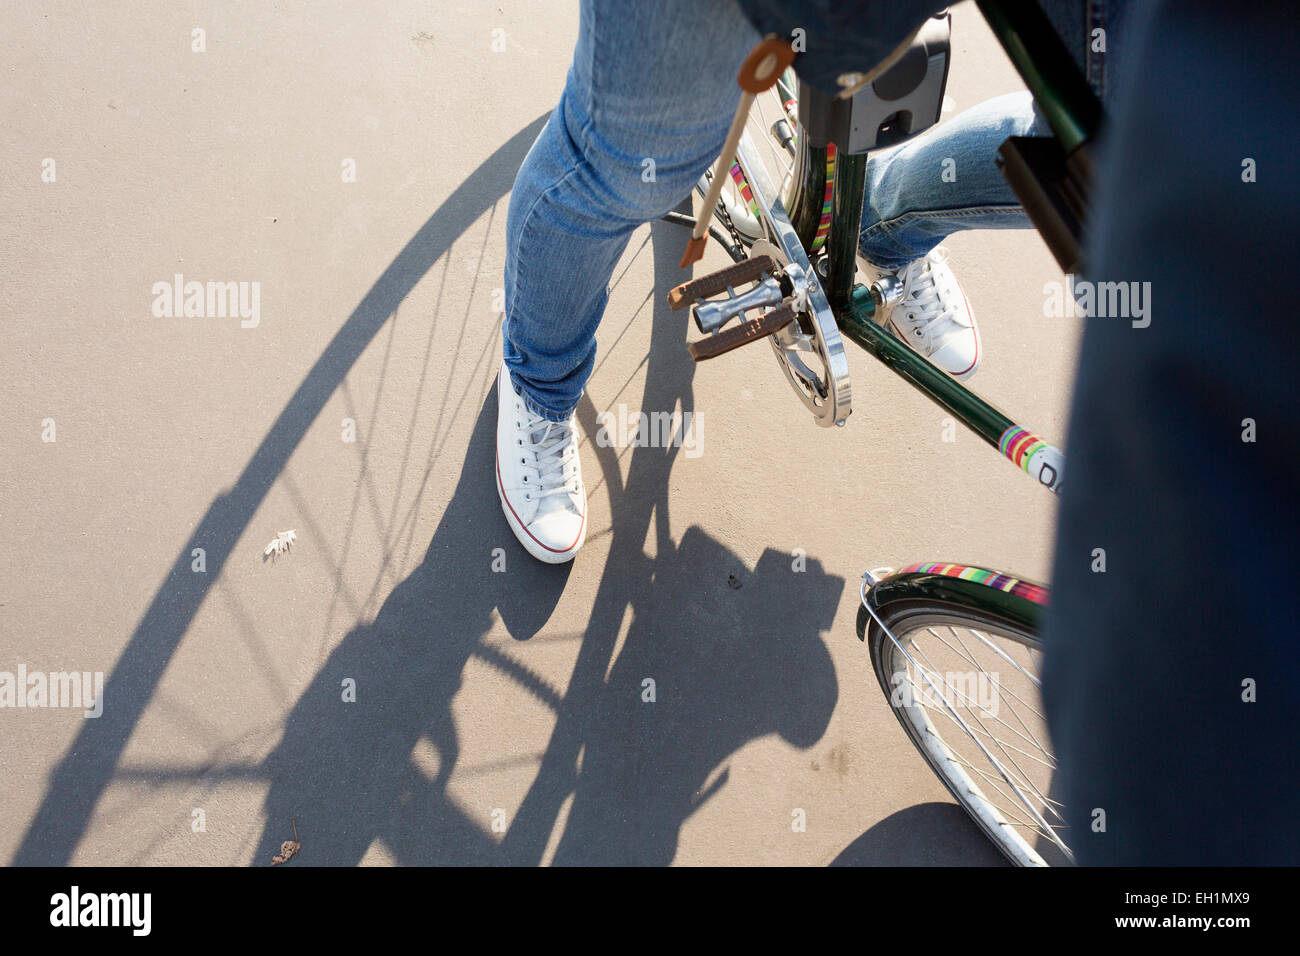 Cropped image of businessman riding bicycle on street - Stock Image